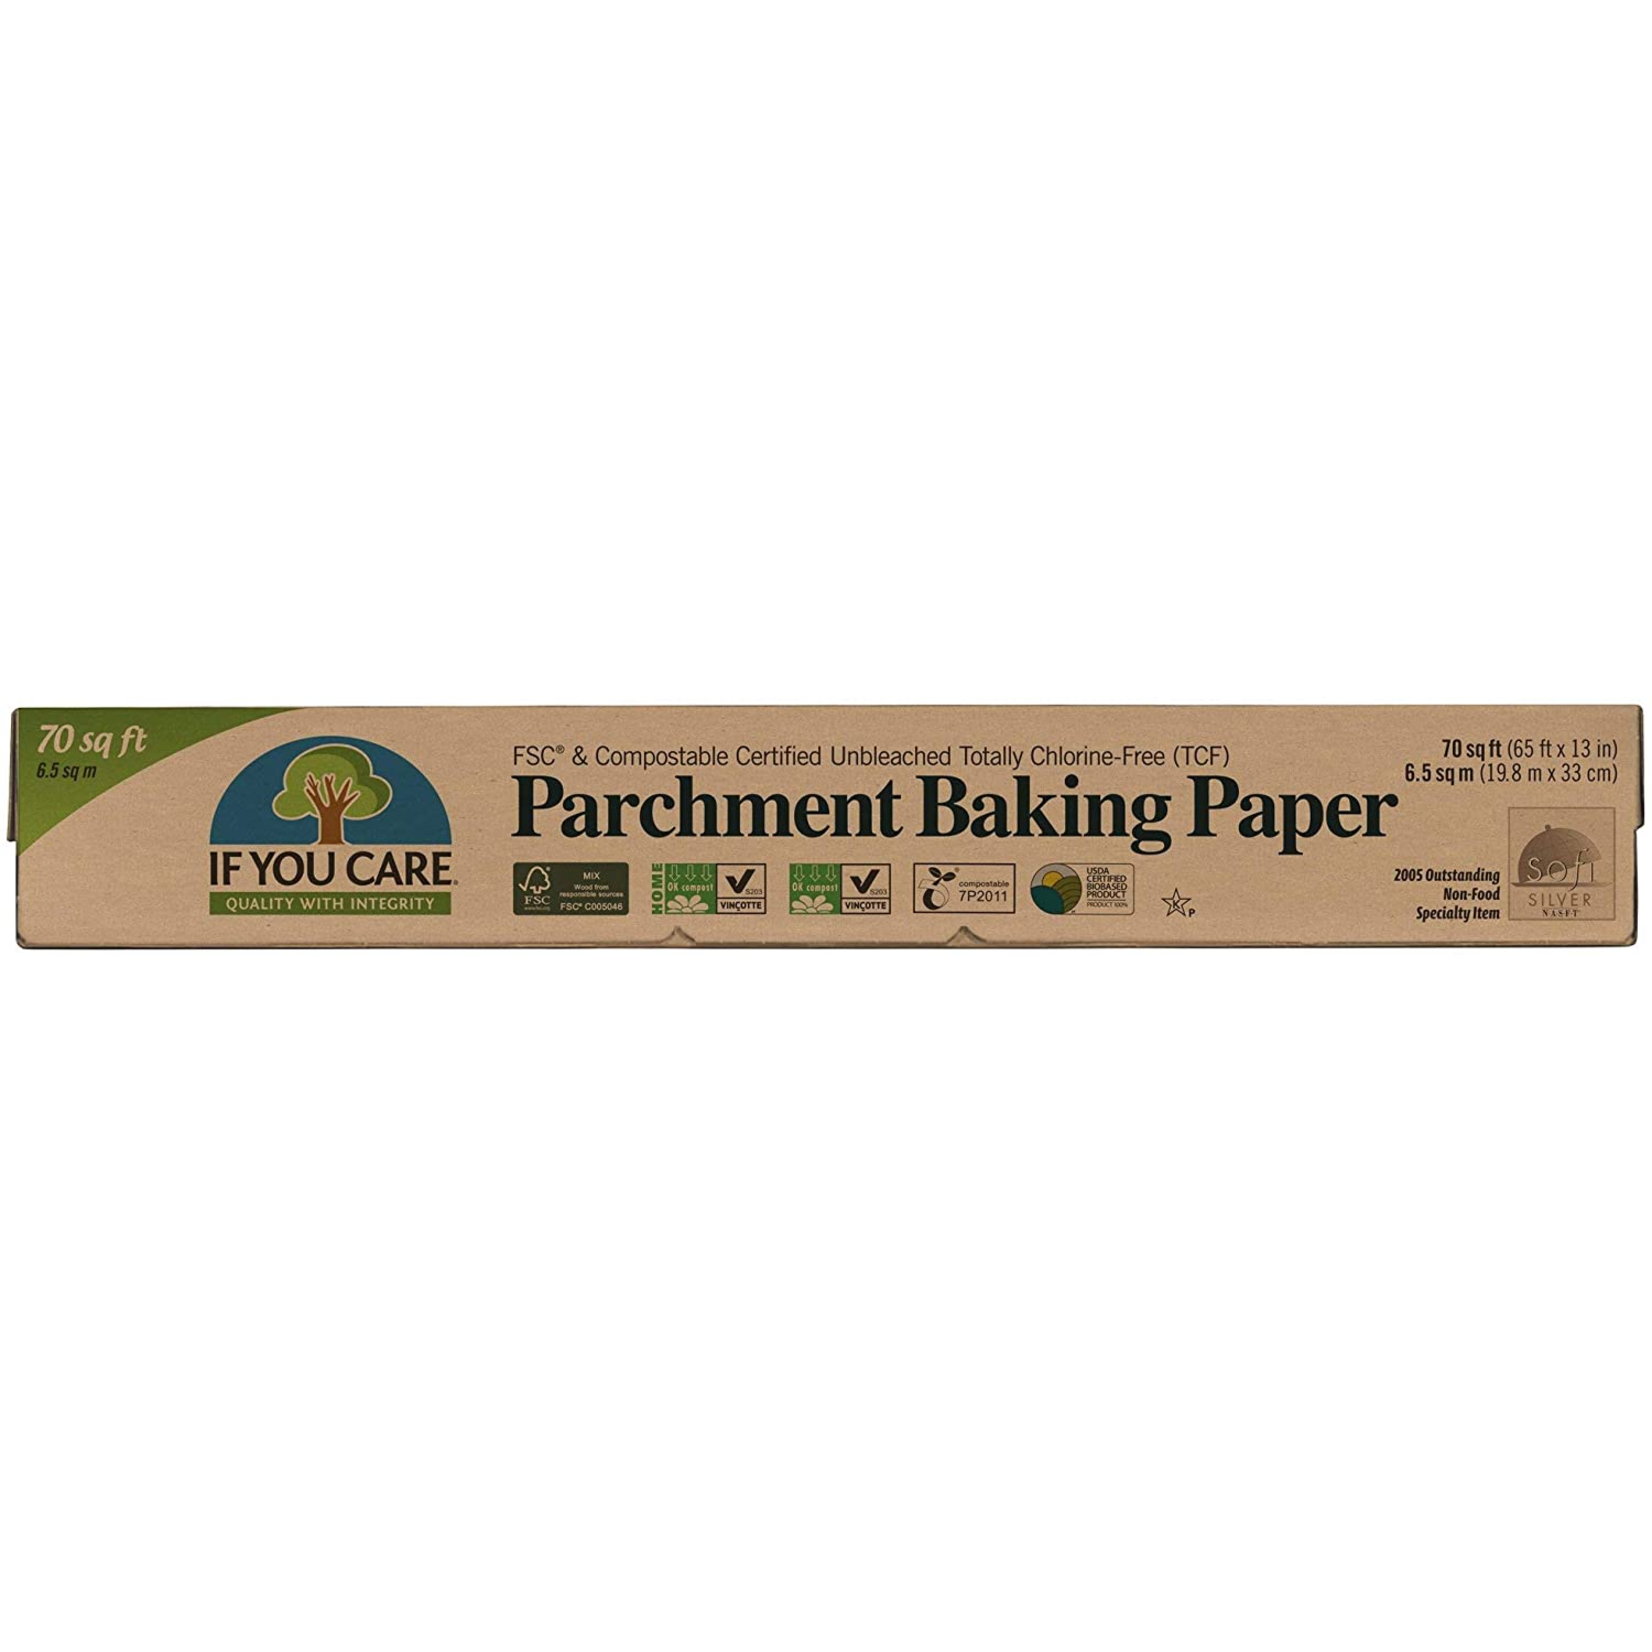 If You Care If You Care Parchment Baking Paper Roll